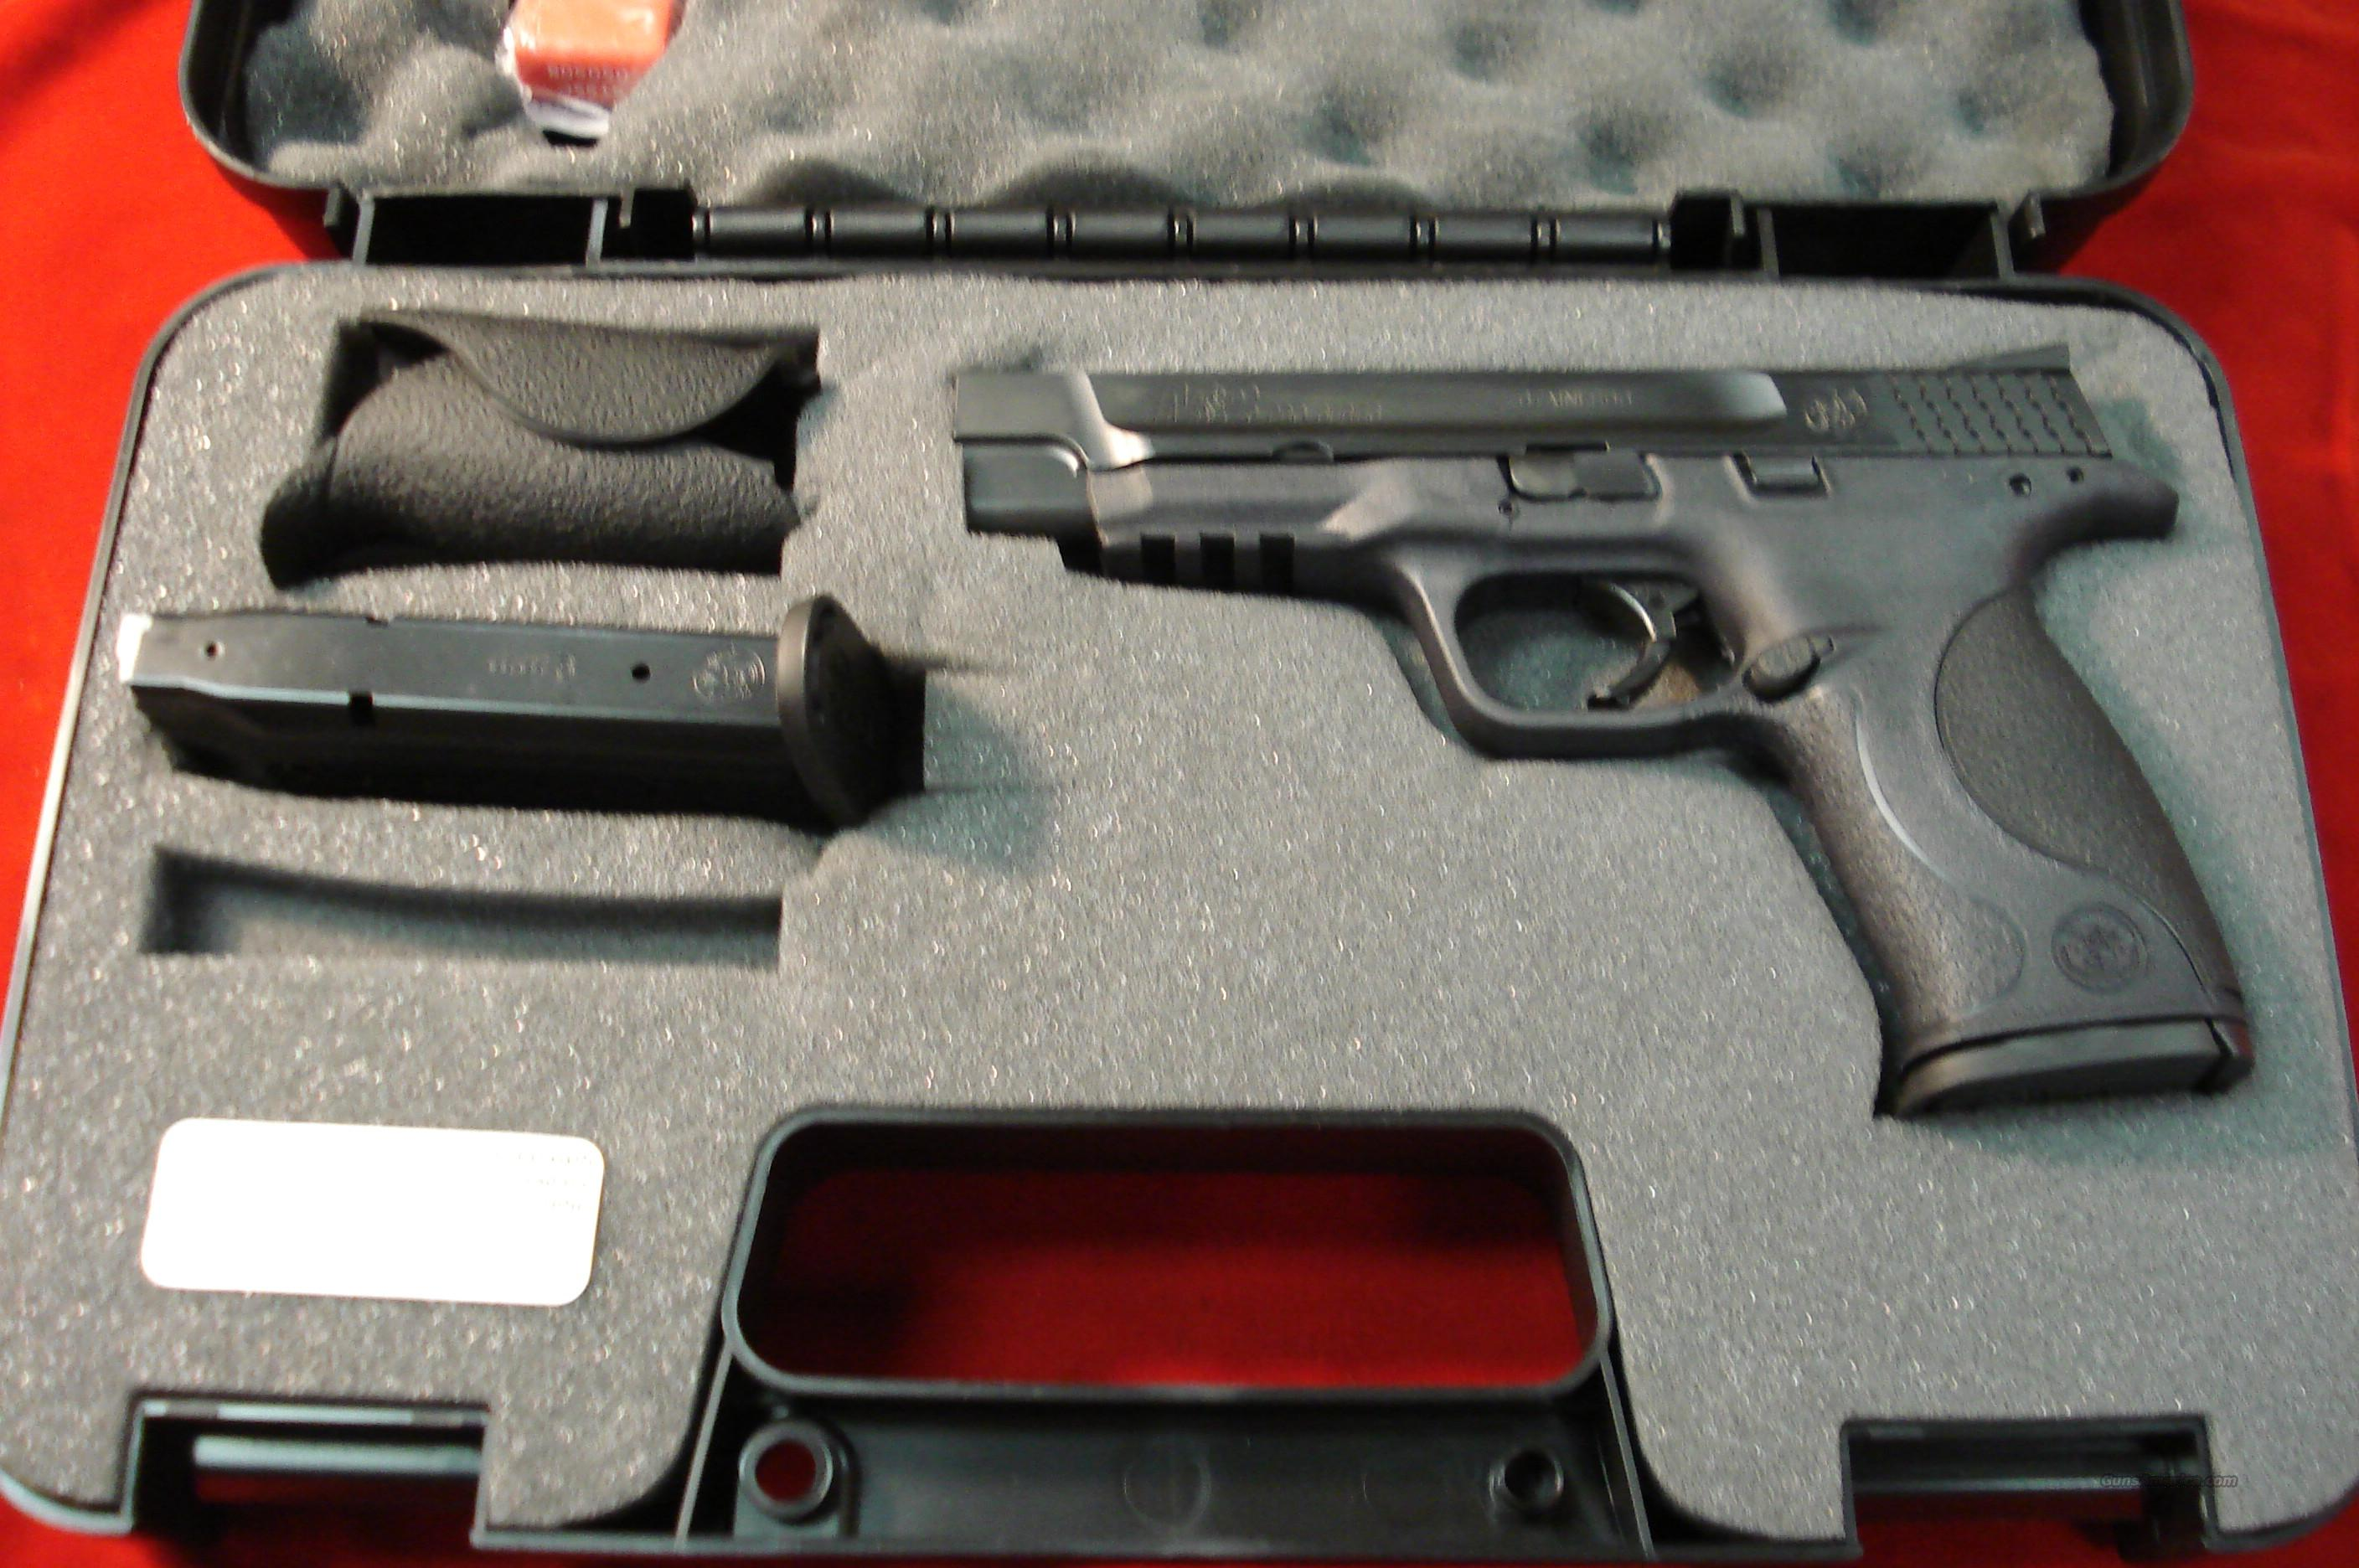 SMITH AND WESSON M&P PRO SERIES 9MM HIGH/CAP NEW   Guns > Pistols > Smith & Wesson Pistols - Autos > Polymer Frame